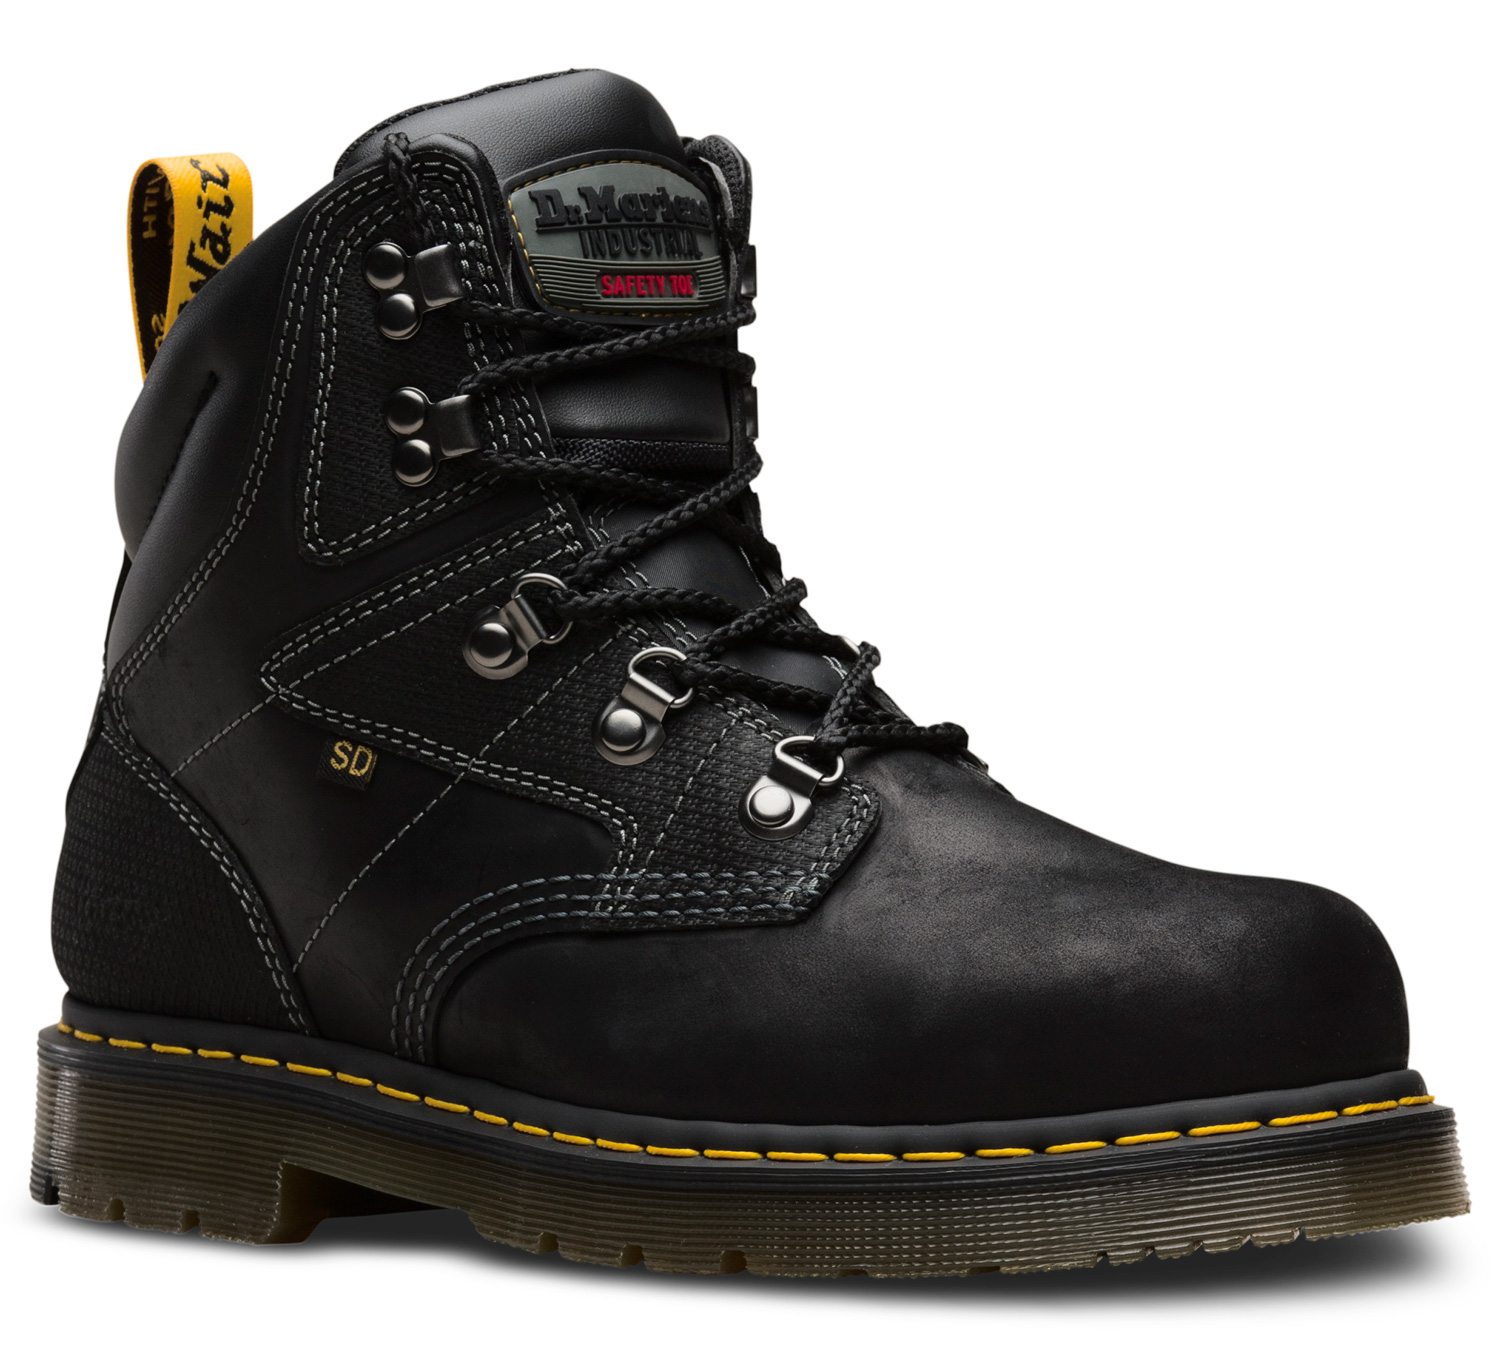 d3ae55df5a1 Dr. Martens Men's Steel Toe SD 6 Inch Boot